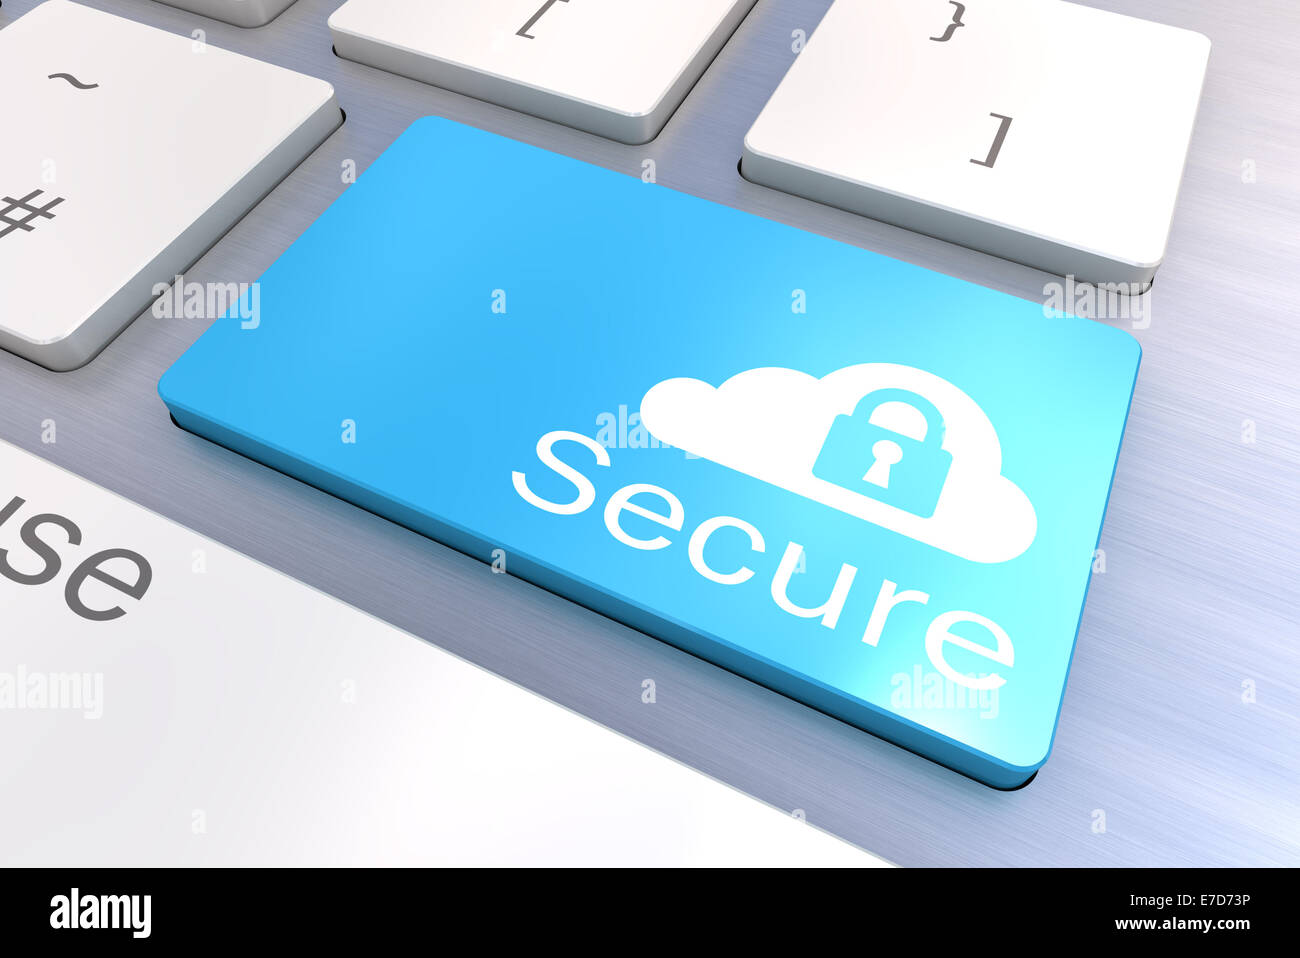 A Colourful 3d Rendered Illustration showing a Cloud Secure Concept on a Computer Keyboard - Stock Image